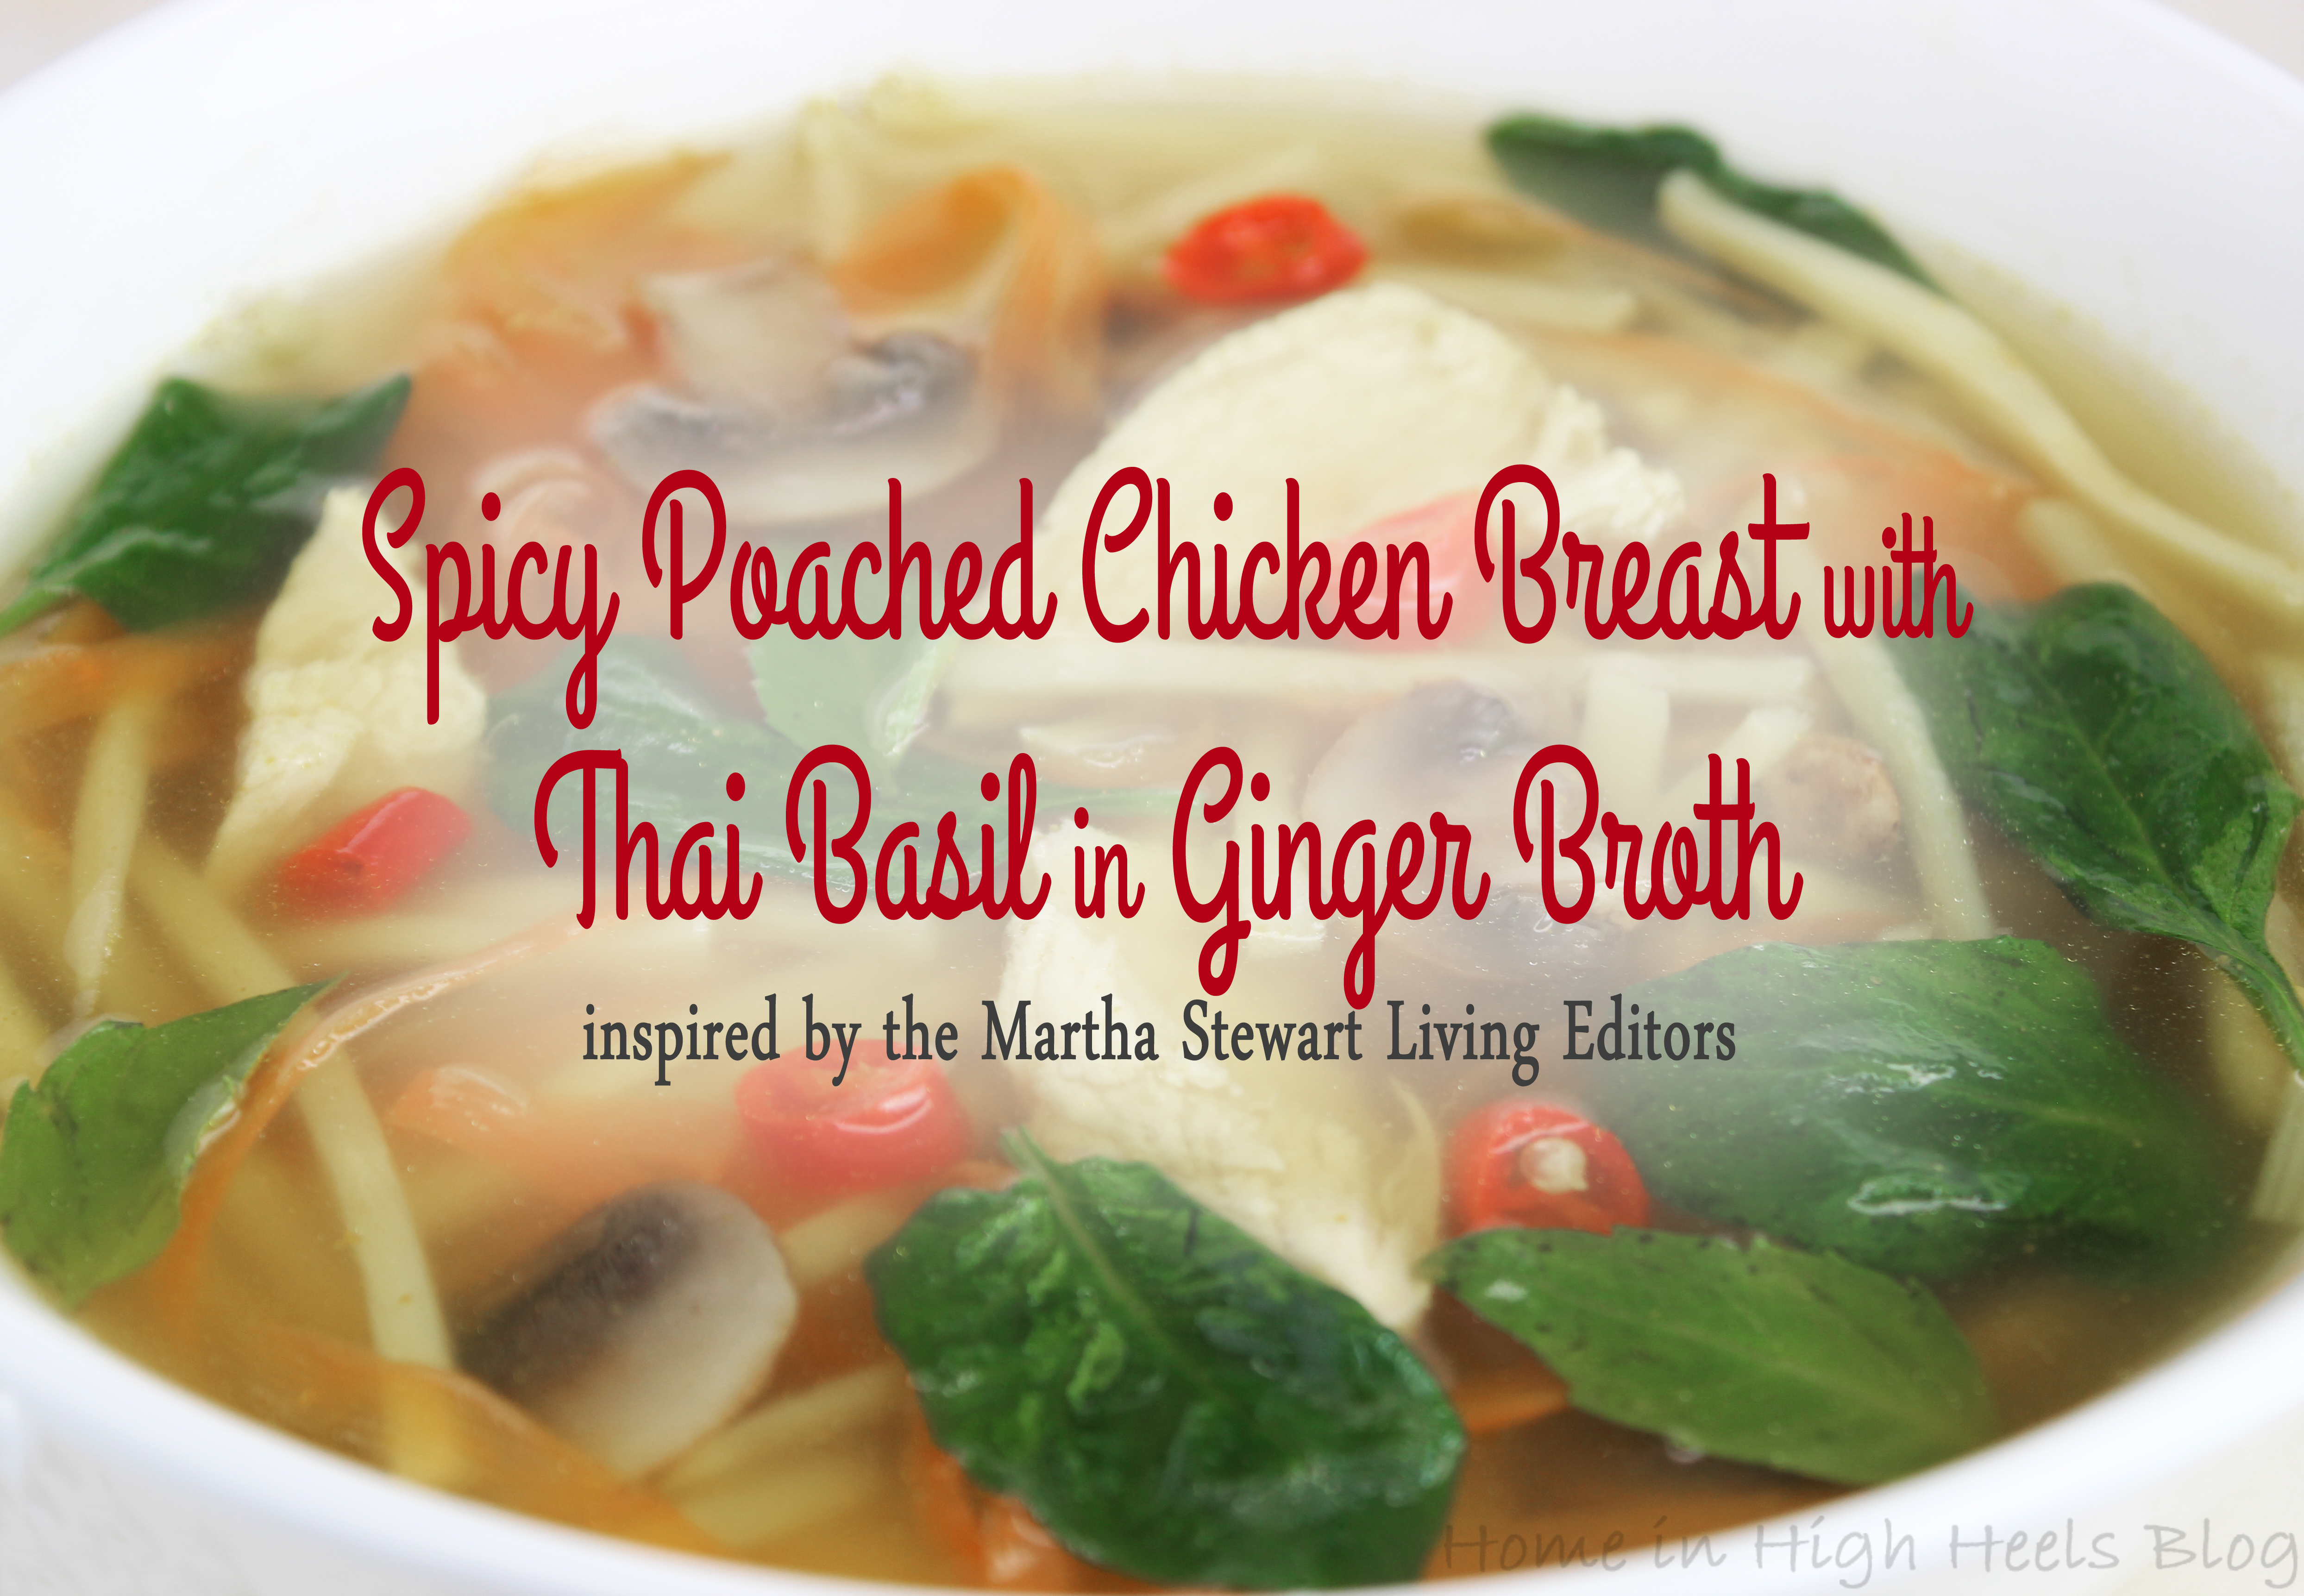 Spicy Poached Chicken Breast with Thai Basil in Ginger Broth Recipe inspired by the editors of Martha Stewart Living on Home in High Heels Blog. An easy soup with class & a bit of spice for that Thai flair. Perfect for when you're feeling sick or just want a fresh burst of flavor!